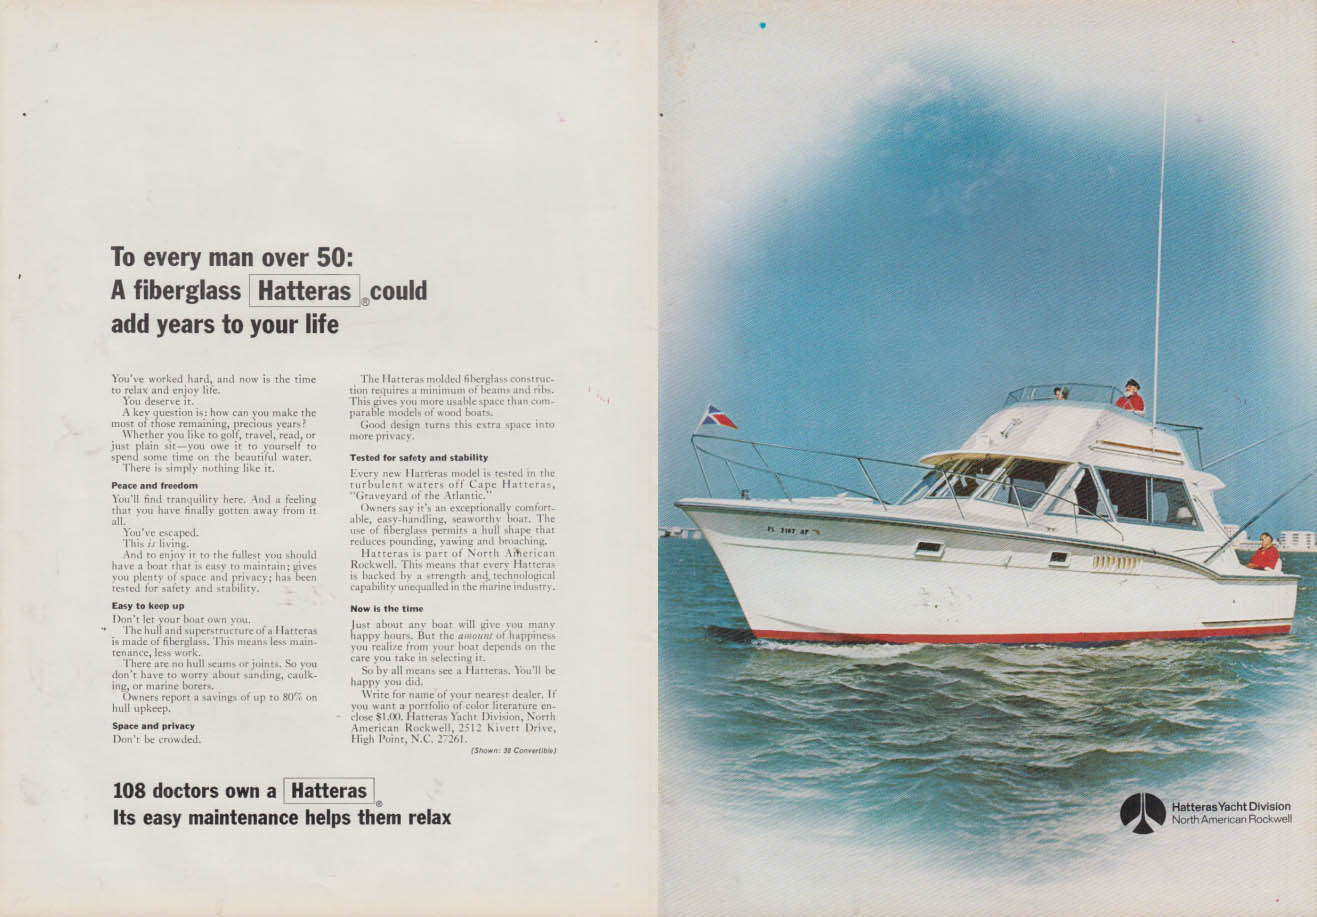 Image for Men over 50 - A Hatteras 38 Convertible yacht could add years ad 1970 NY